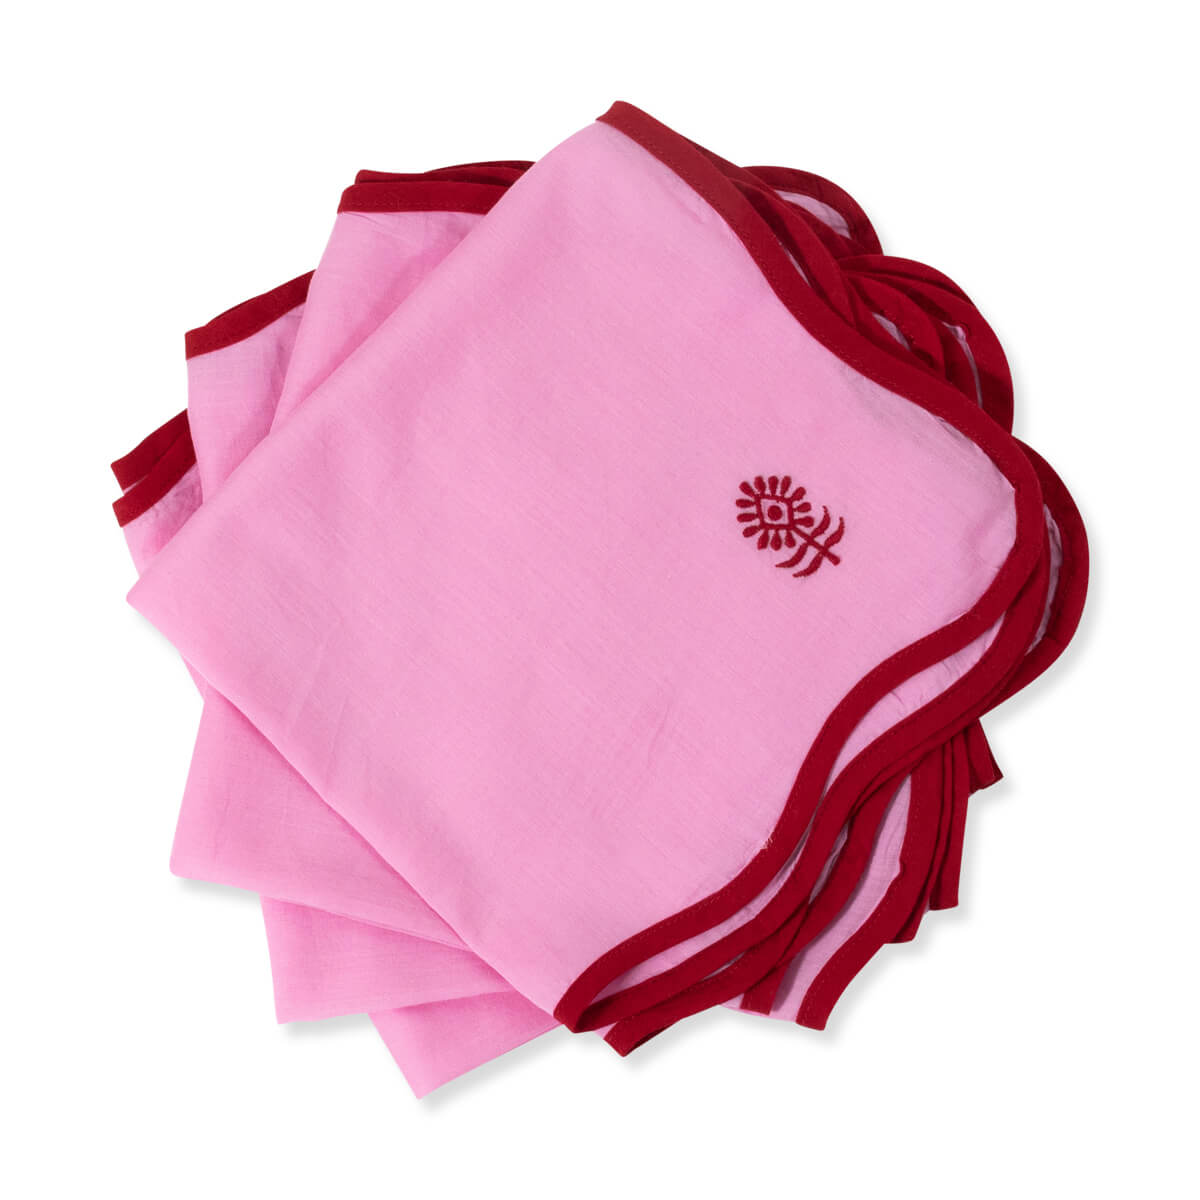 Furbish Studio - Inez Napkin in Pink stack of 4